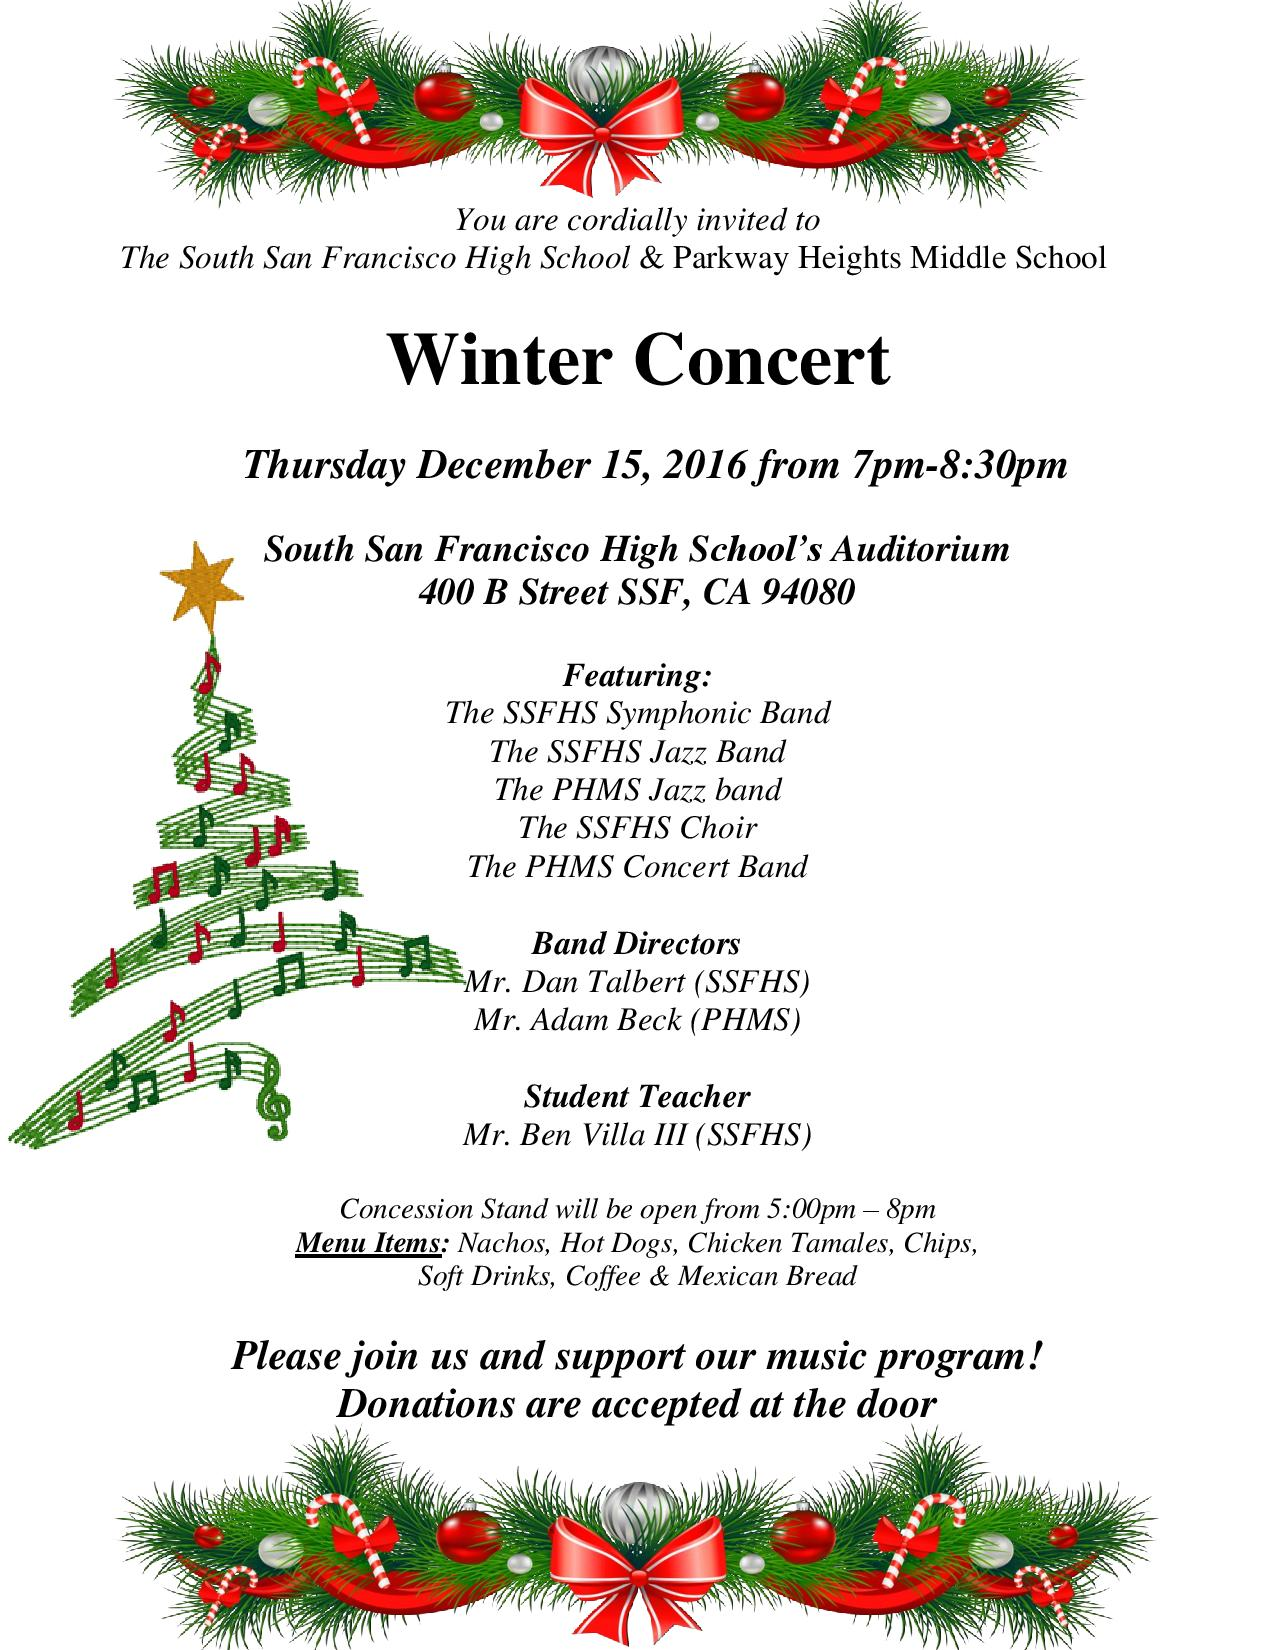 South San Francisco High School & Parkway Heights Middle School Present Winter Concert on December 15th